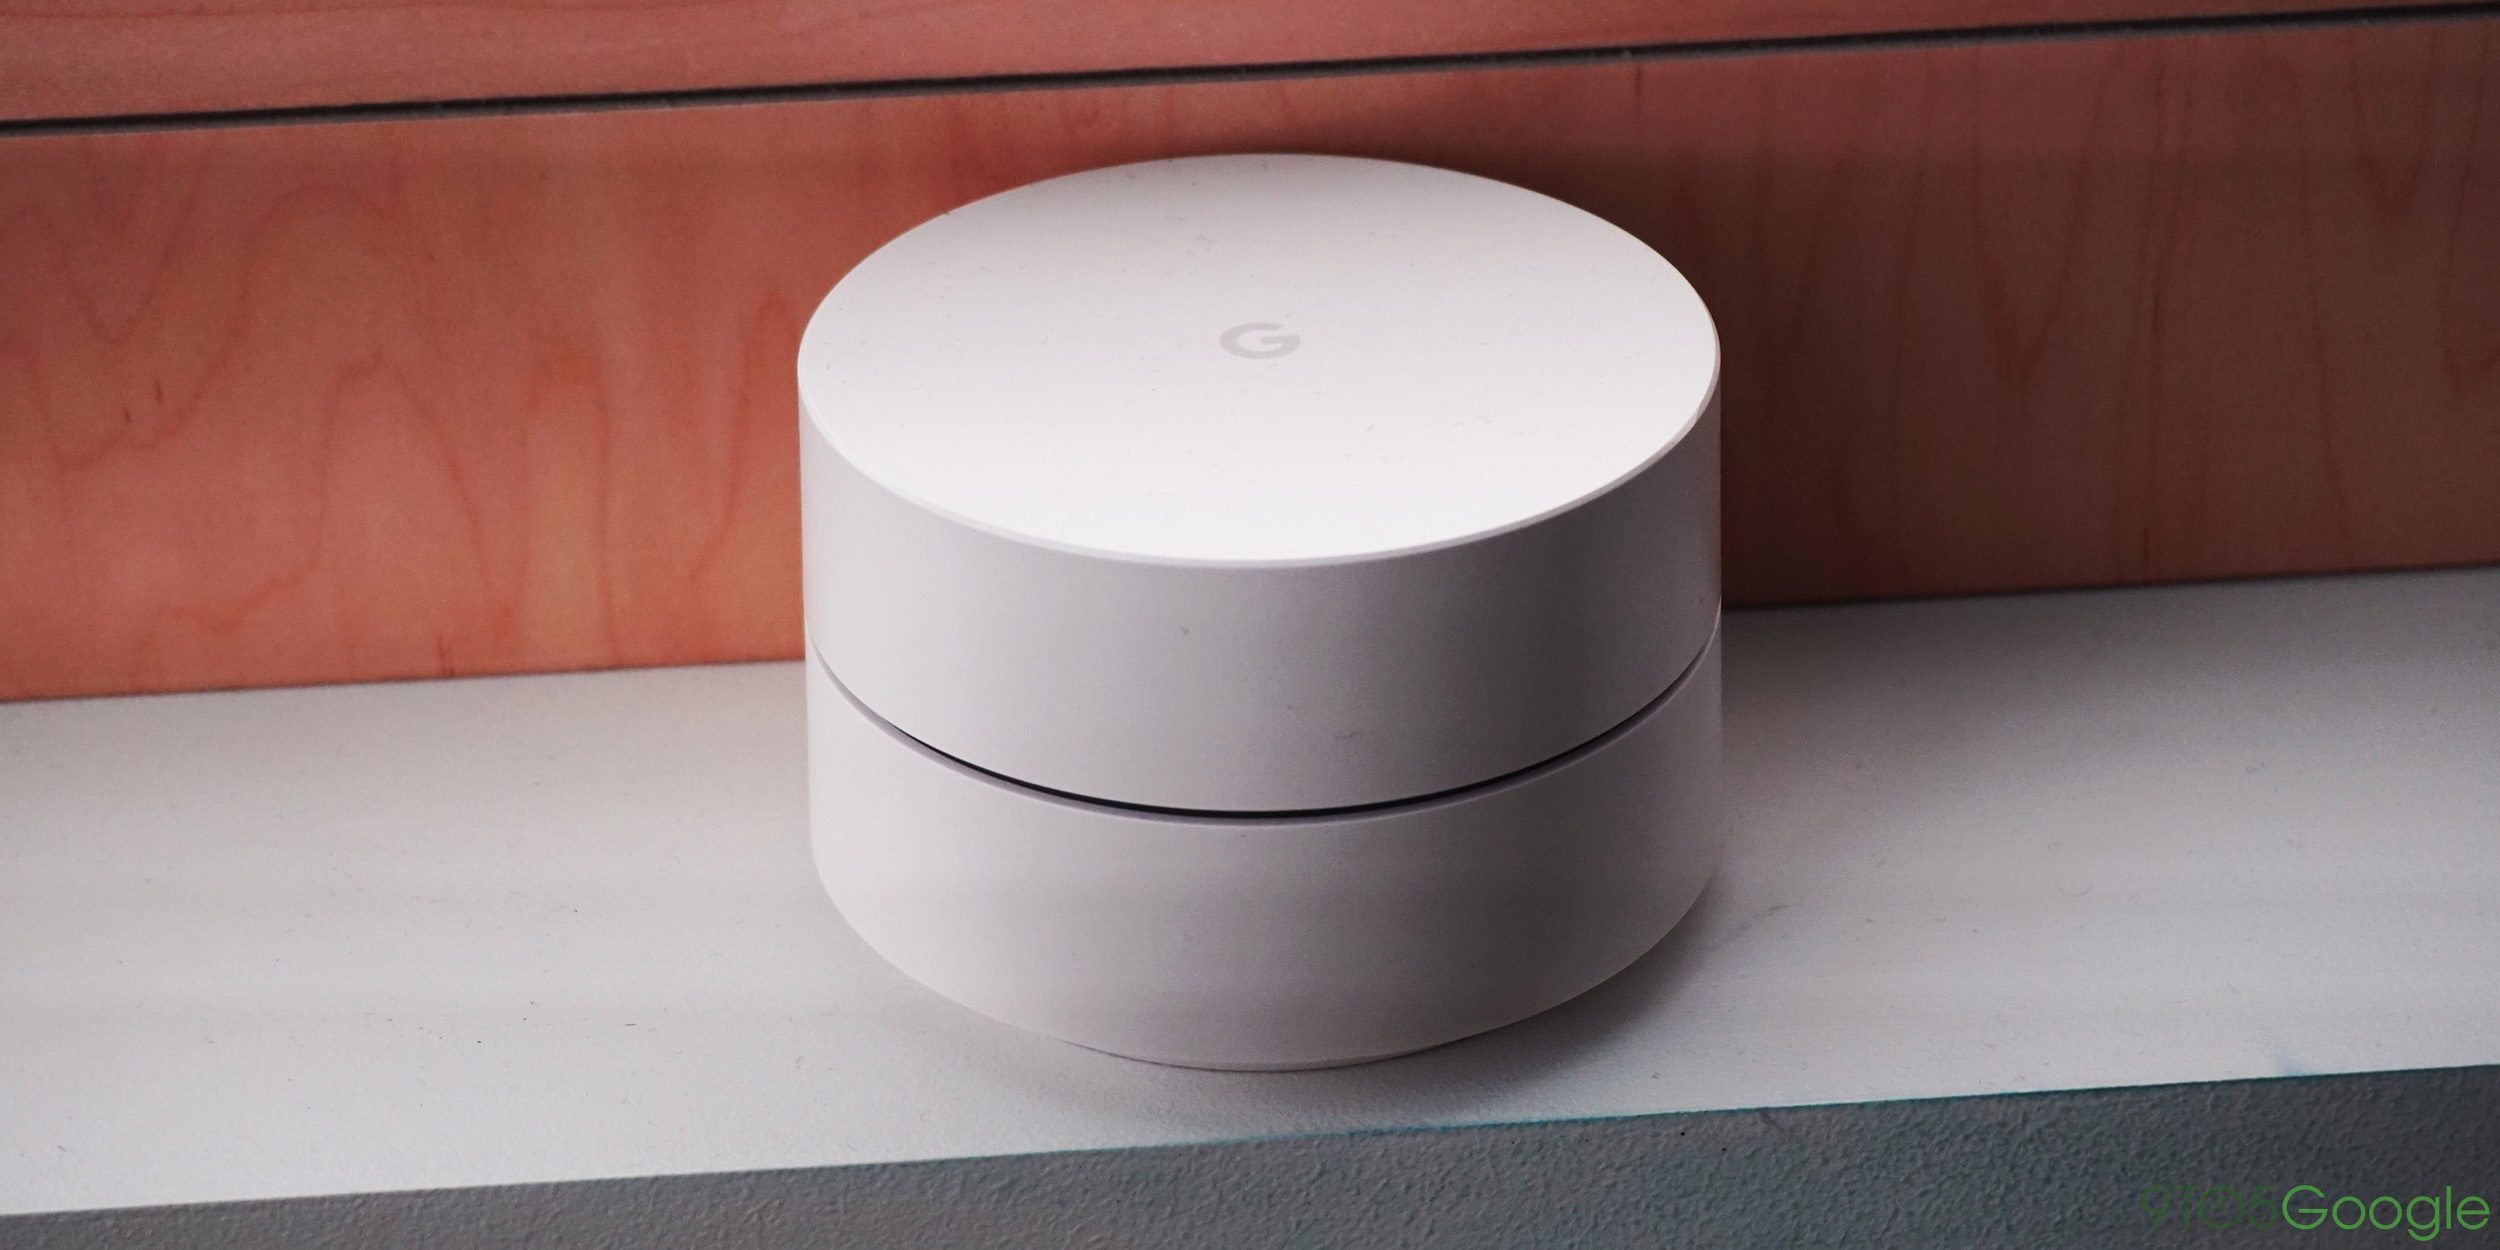 Google Property application now allows you import Google Wifi networks